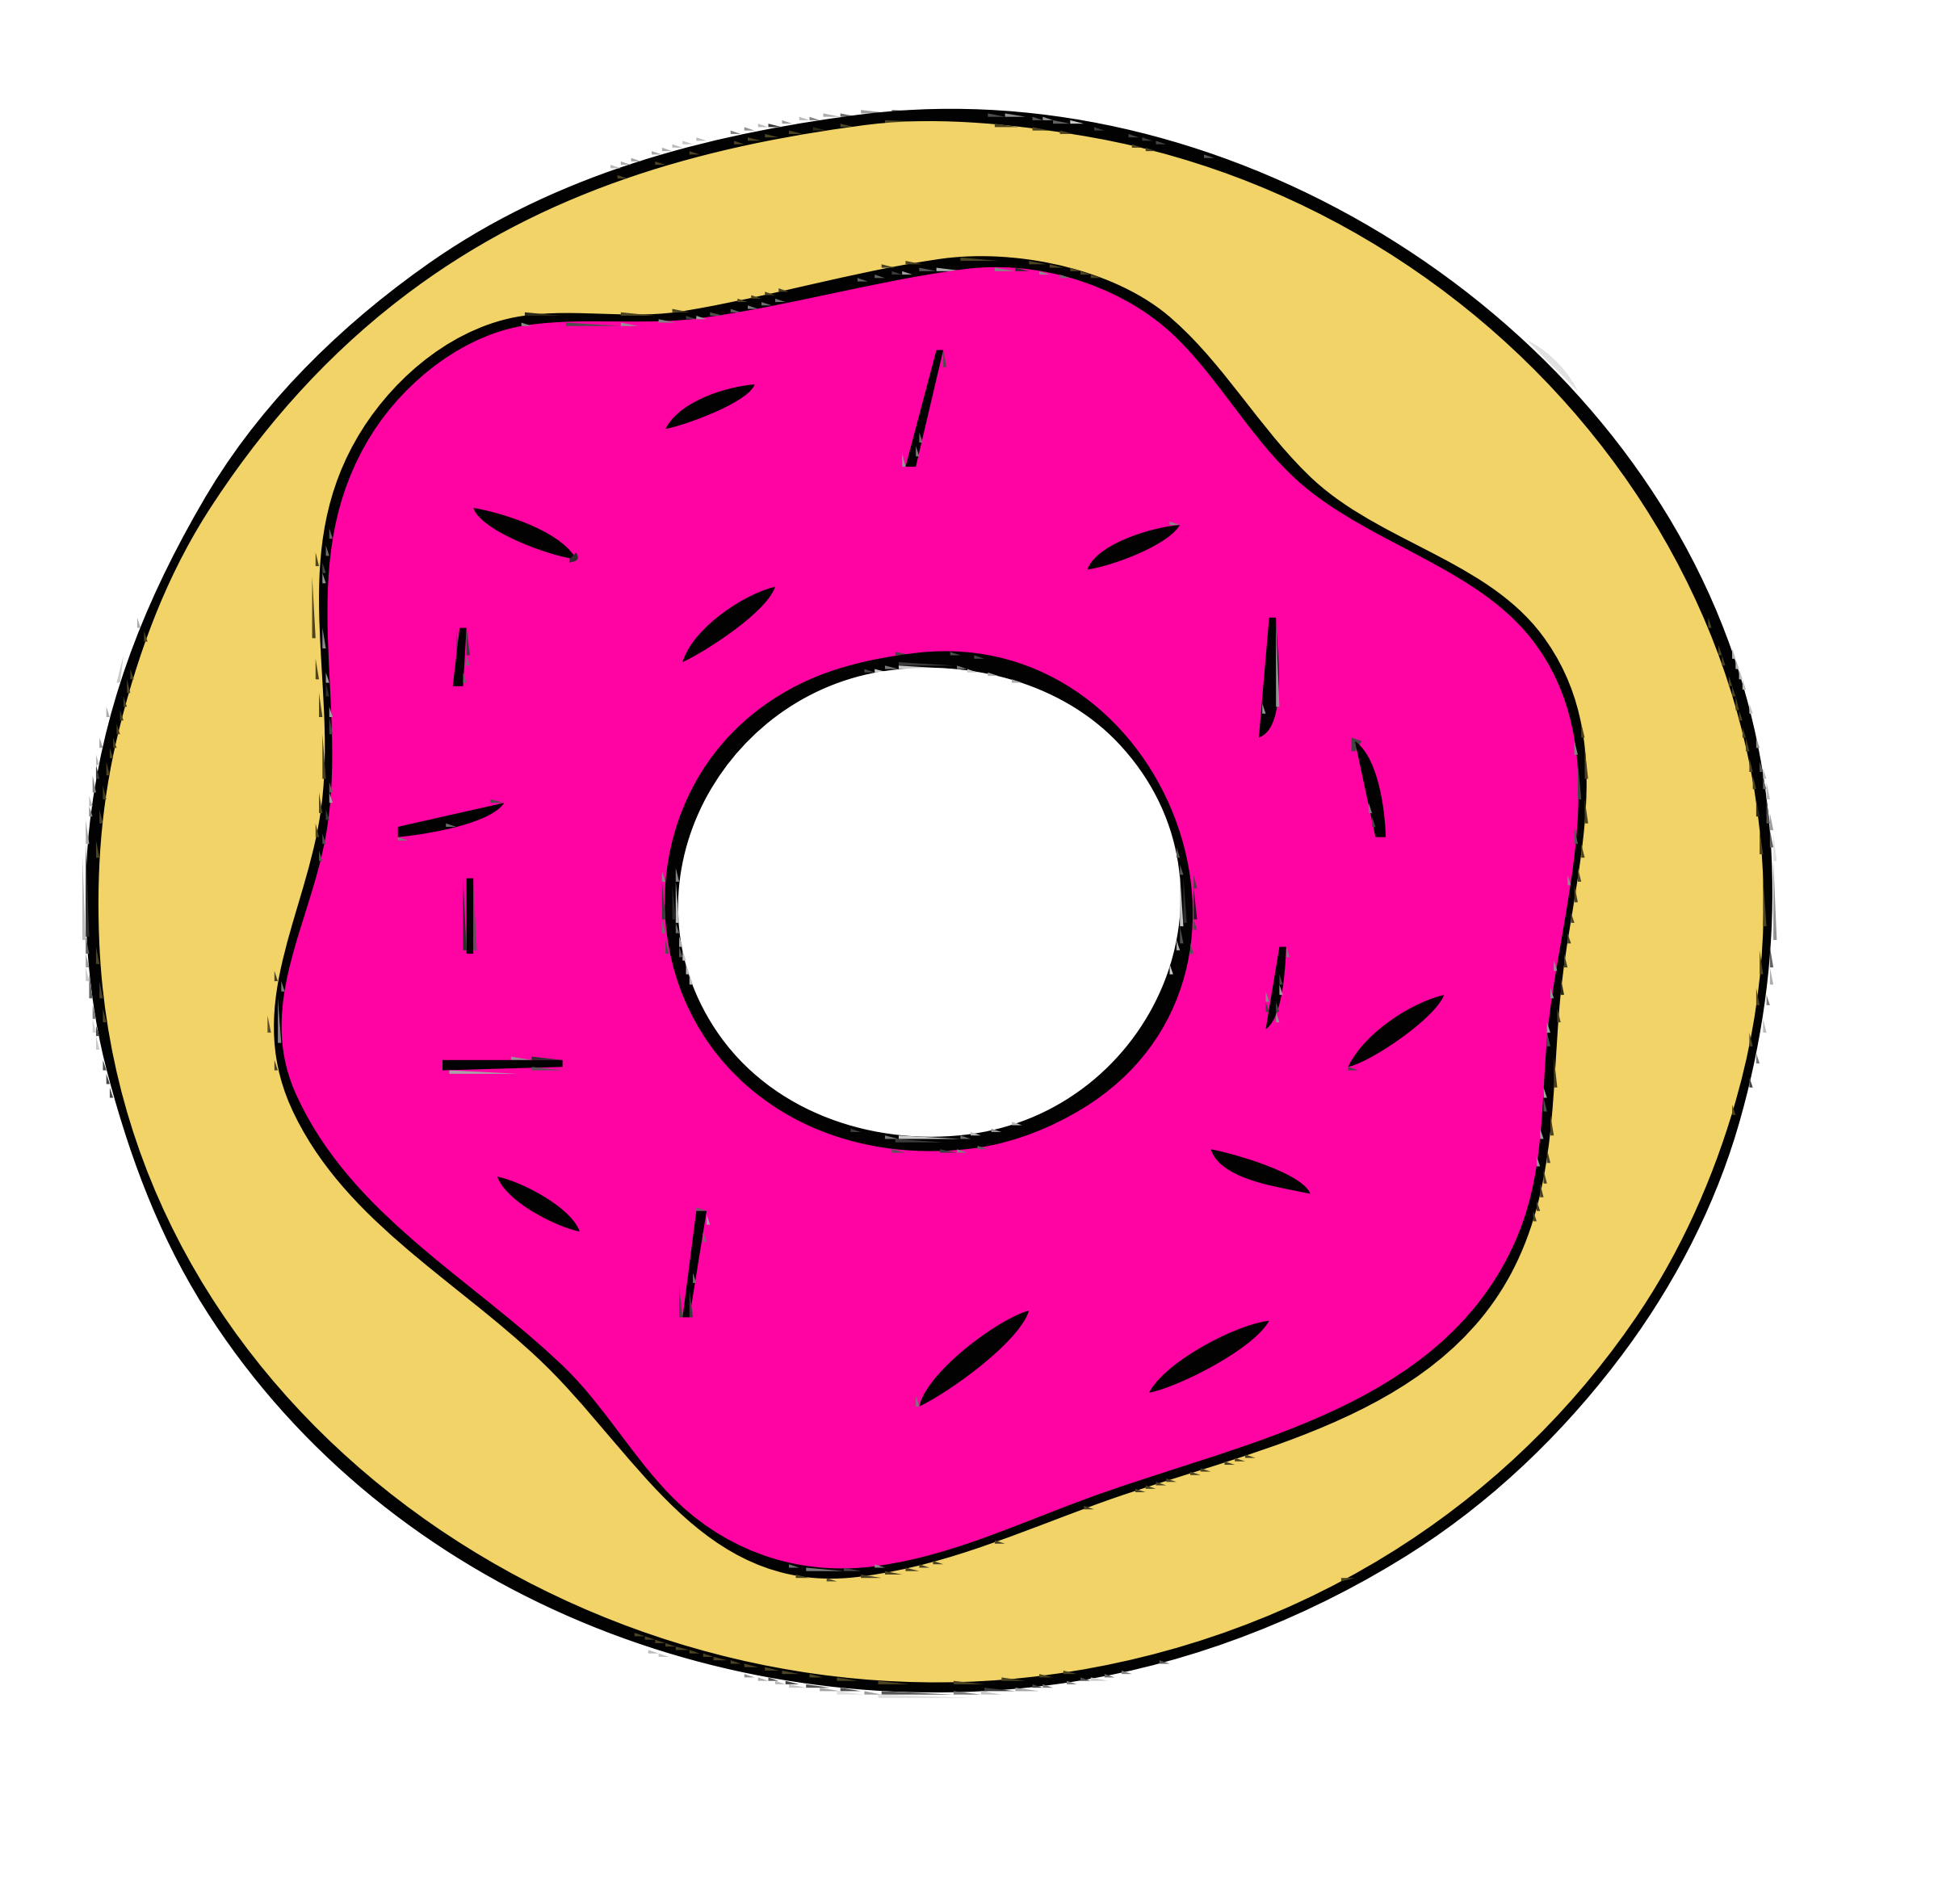 do you like doughnuts? 10 by cnestory